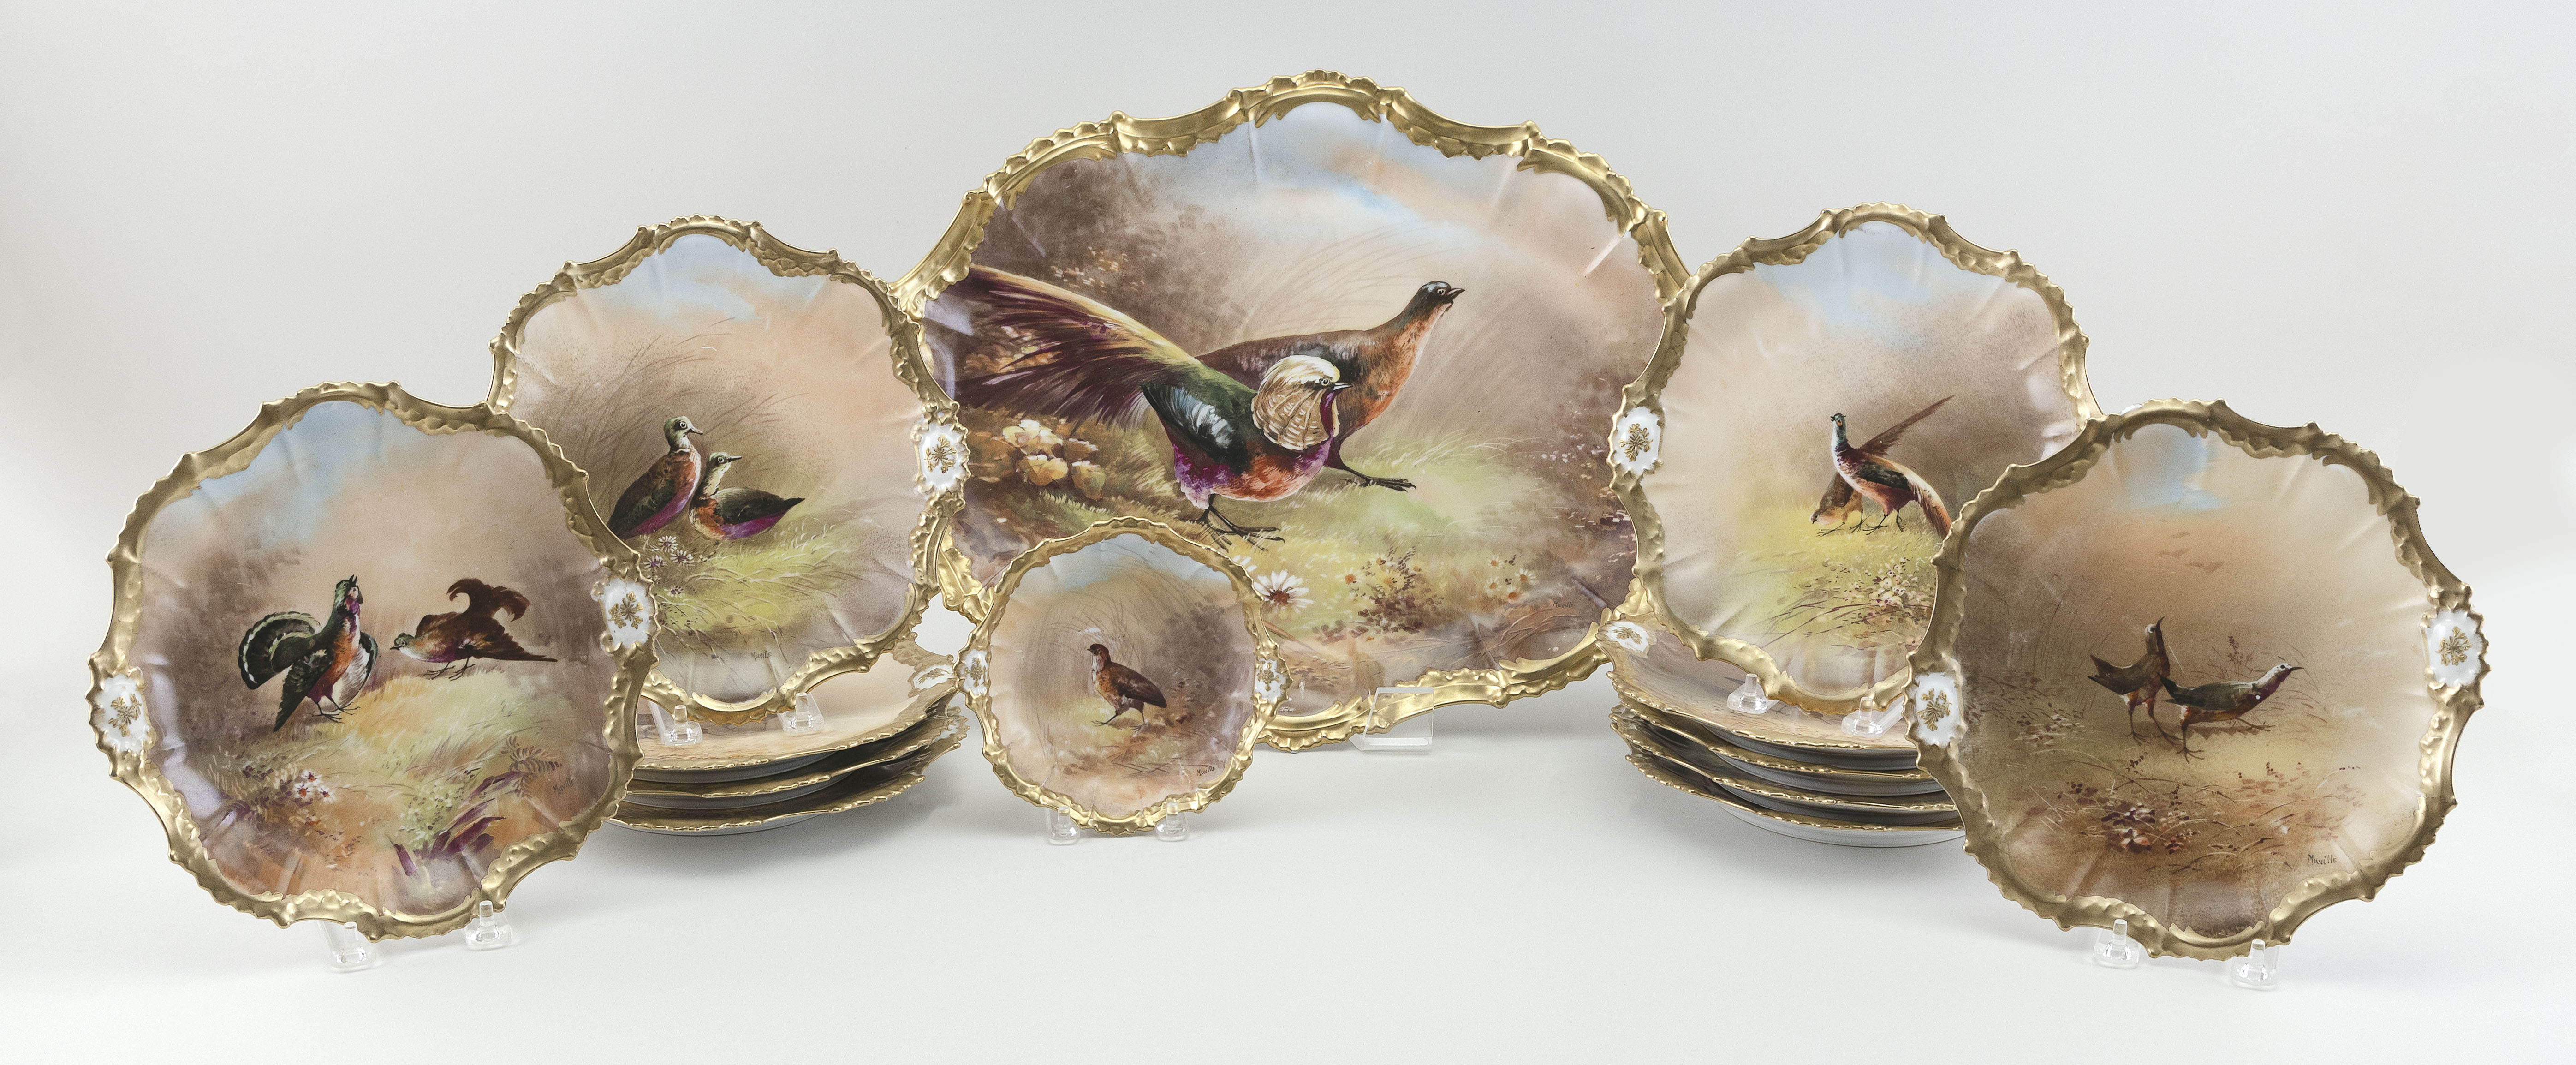 """LIMOGES PORCELAIN PLATTER AND PLATES Early 20th Century Platter length 18.5"""". Plate diameters 9.5"""" and 6""""."""